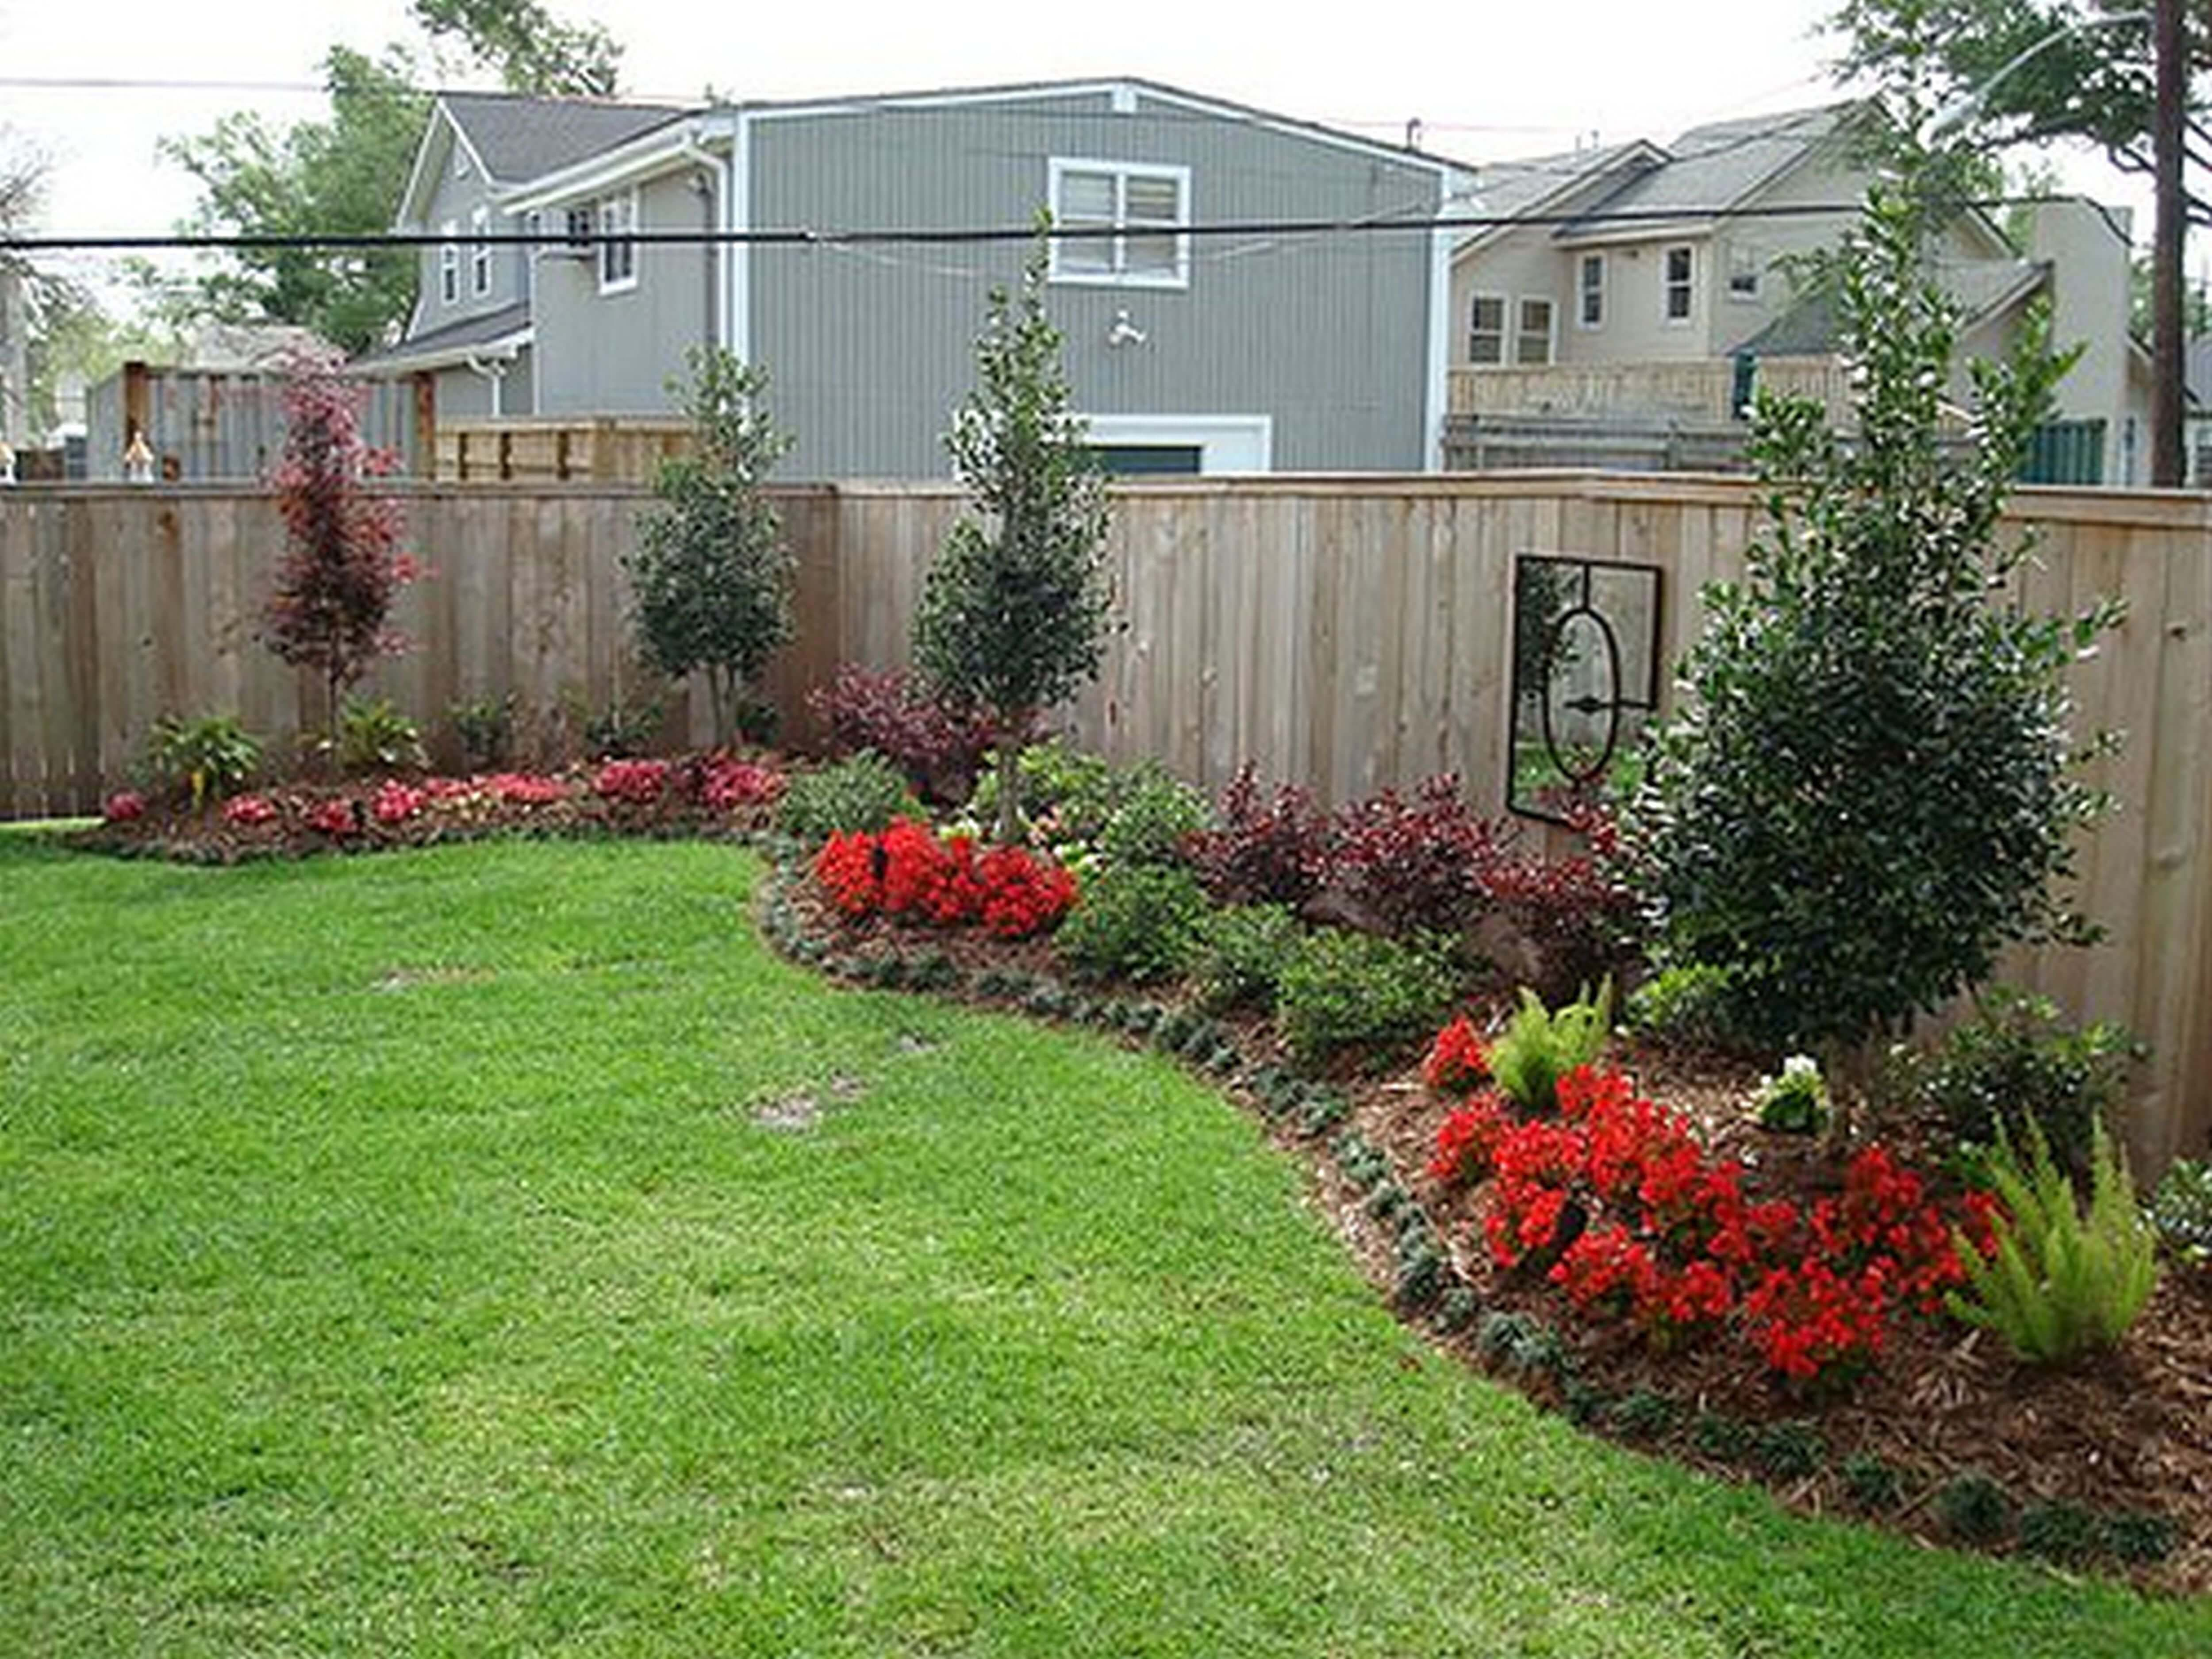 Backyard Gardening Archives Jolenes Gardening Flowers Small with regard to 14 Some of the Coolest Initiatives of How to Makeover Low Budget Backyard Landscaping Ideas